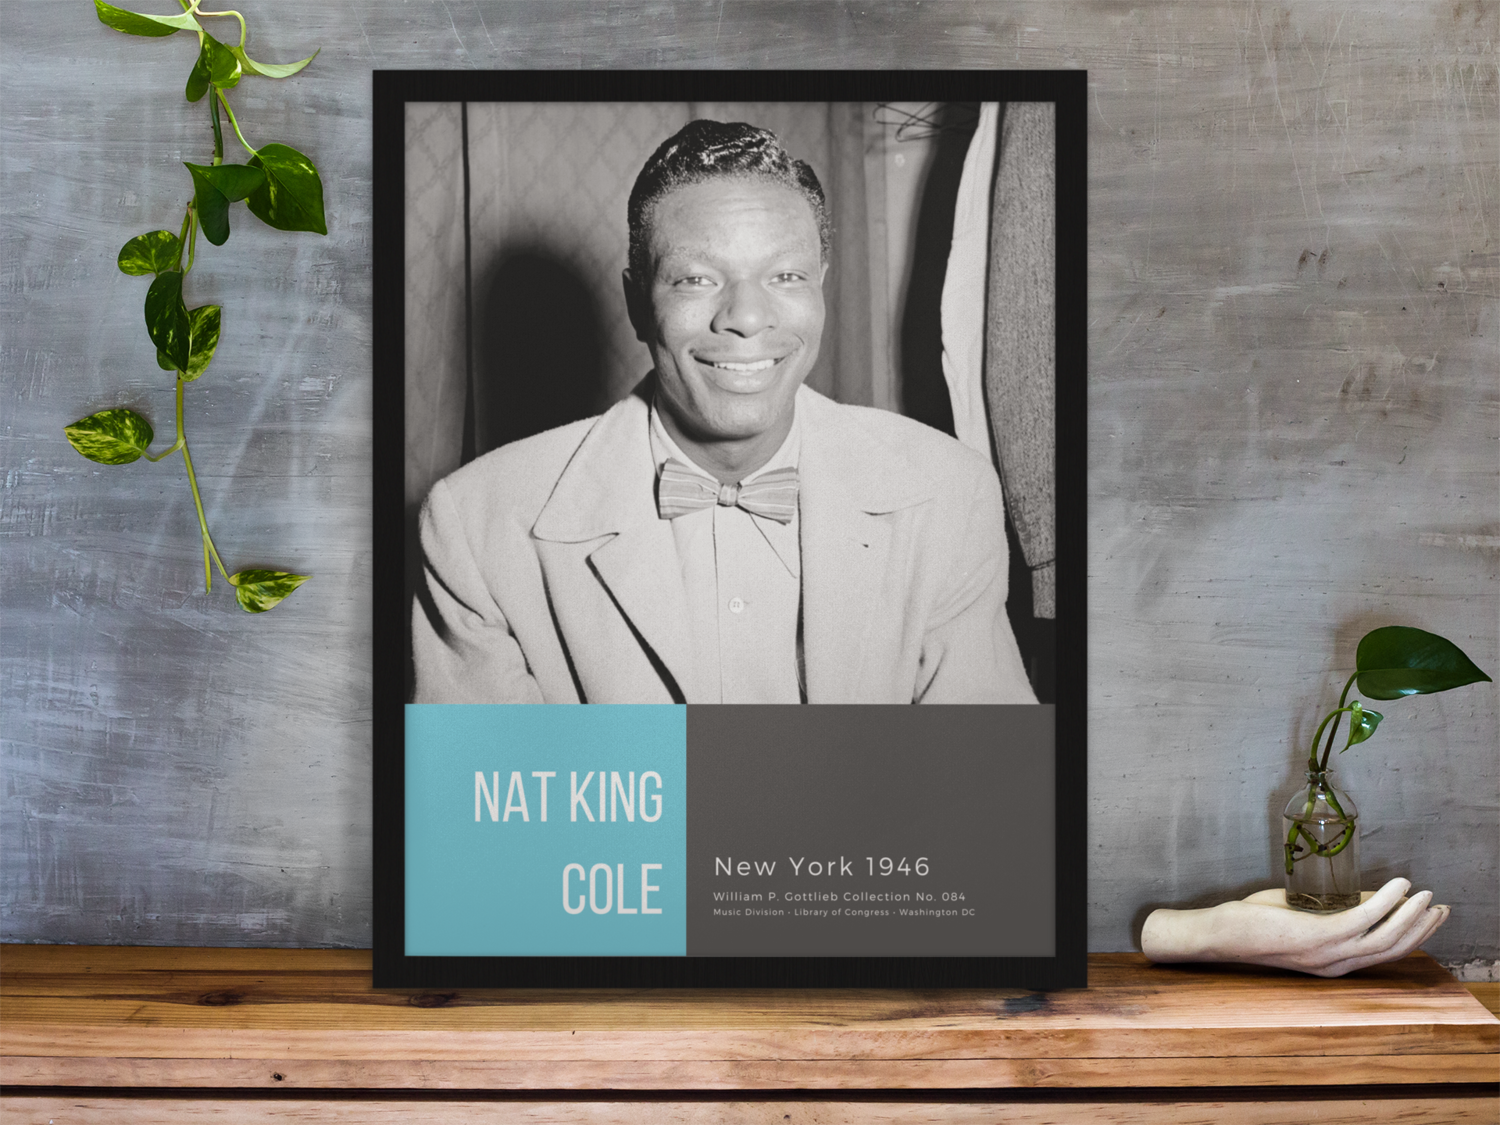 Nat King Cole, New York 1946